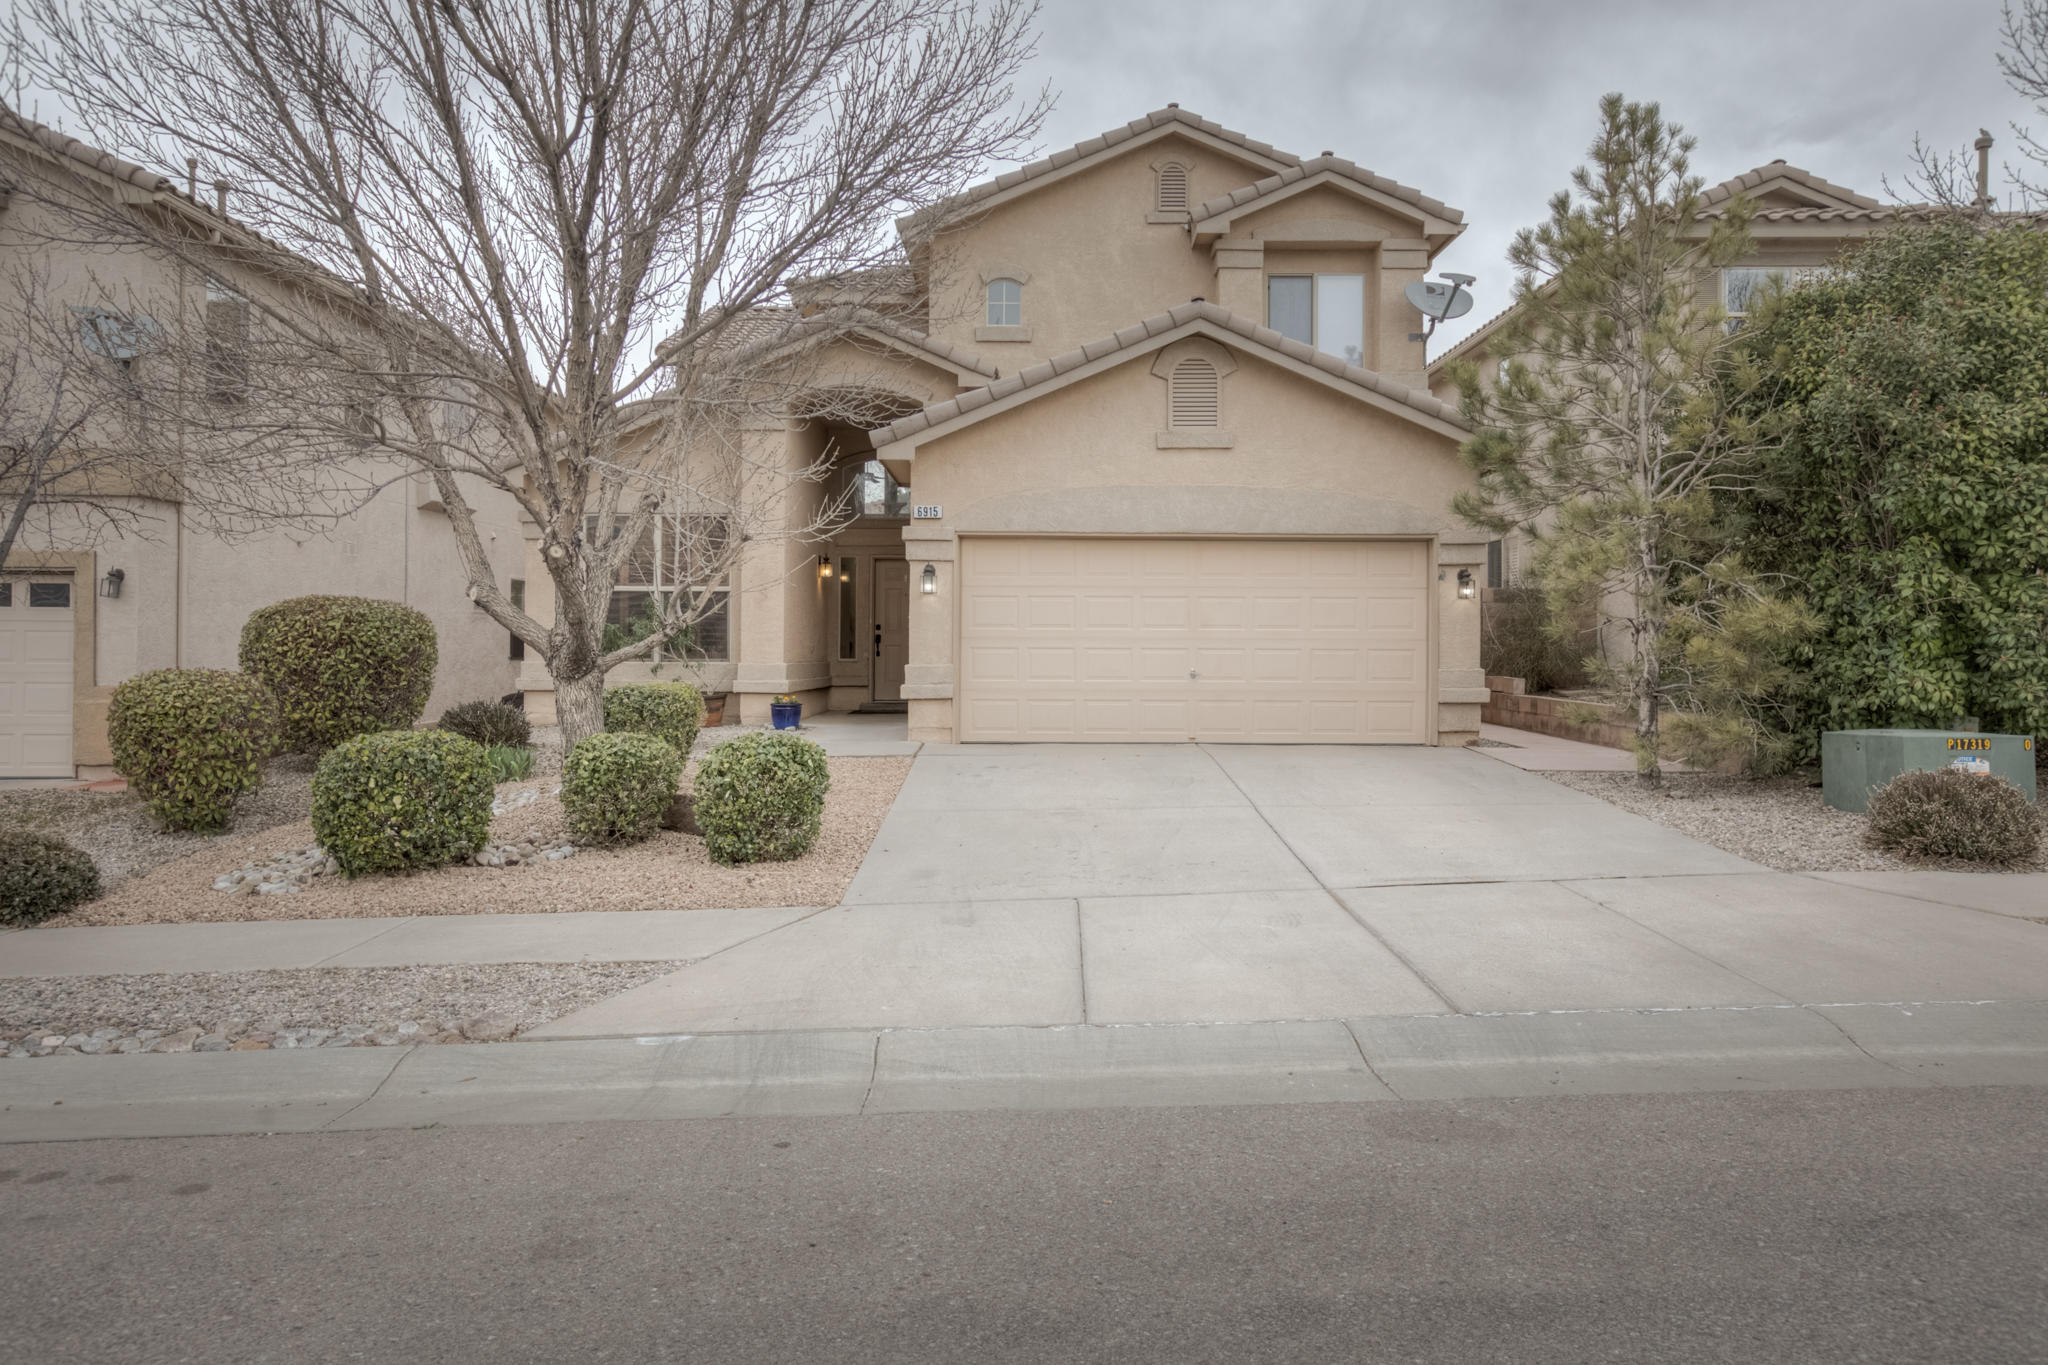 Beautiful, light-filled home in NE ABQ , with convenient access to shopping, dining, parks, and the freeway, located in the La Cueva High School district. Main living area features high ceilings, fireplace, and built-in bookcase. Spacious kitchen w/ quartz countertops and extra deep Blanco Diamond undermount sink (both installed in 2020), gas range and cozy breakfast nook. Large master bedroom on main level w/ master bath with double sinks, garden tub, separate shower, walk in closet and water closet.  Upstairs loft for additional living or office space.  Luxury vinyl in downstairs living area and master bedroom installed in 2020. New refrigerated air unit installed in 2018.  Plantaton shutters on main level.  Backyard features a patio and pergola and easy-care turf.